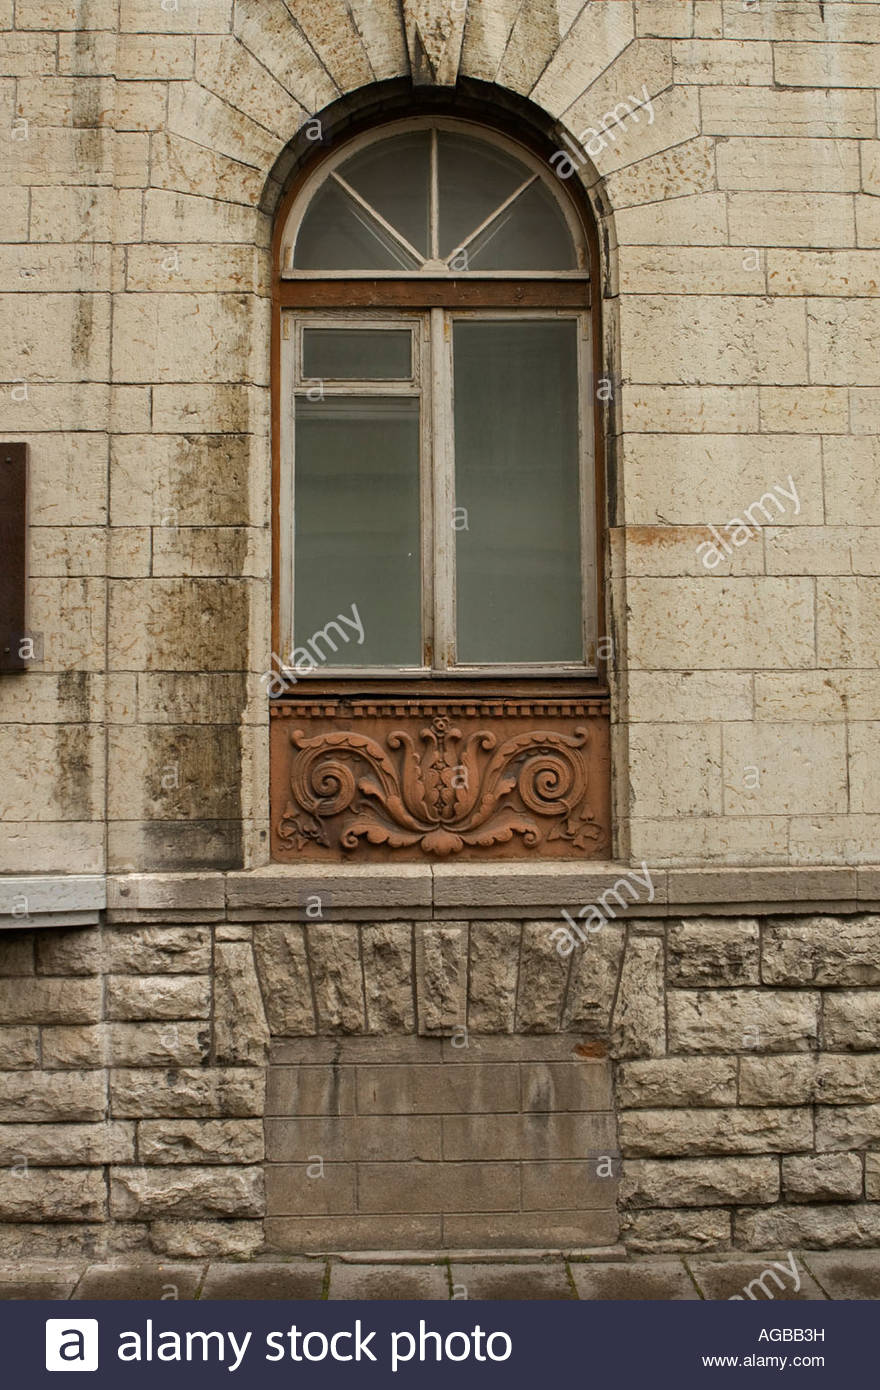 The former KGB HQ in Tallinn, Estonia. Cellar windows block when used as a jail. - Stock Image